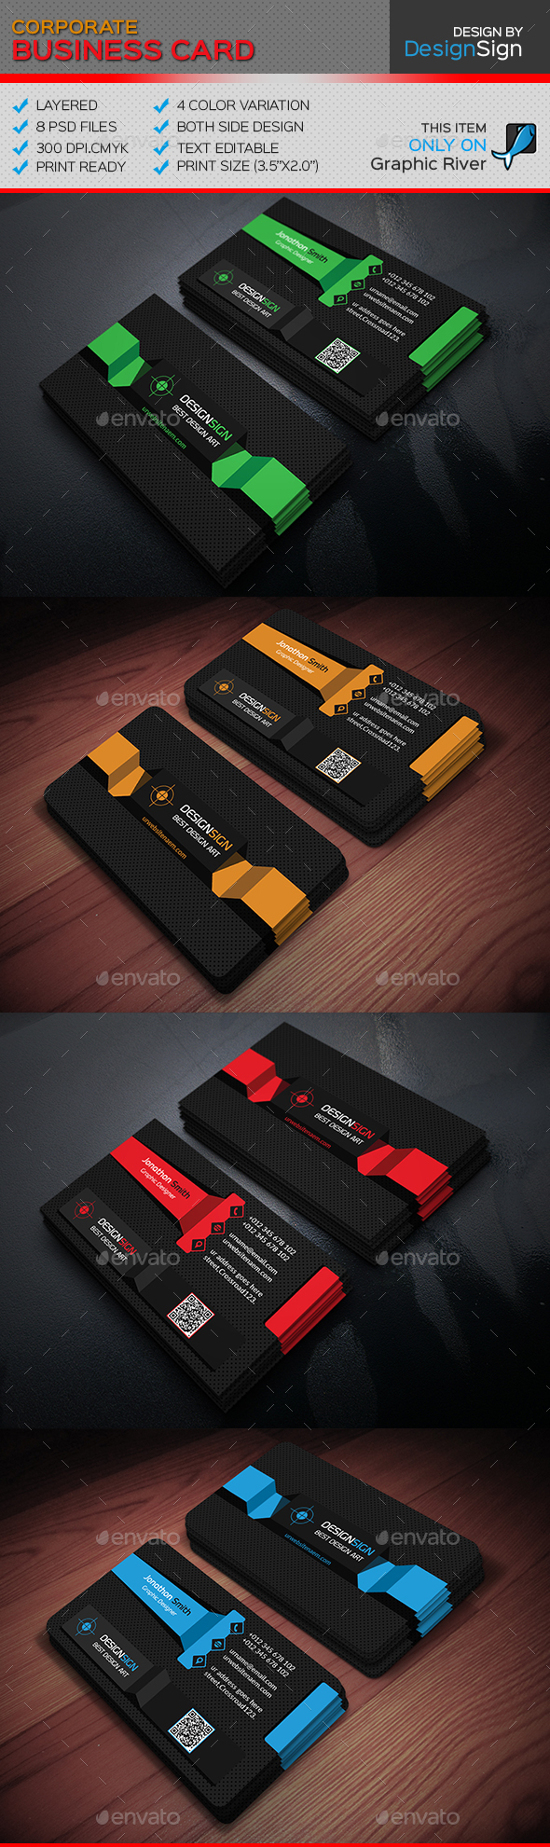 17 best business card templates for corporate business card templates accmission Images